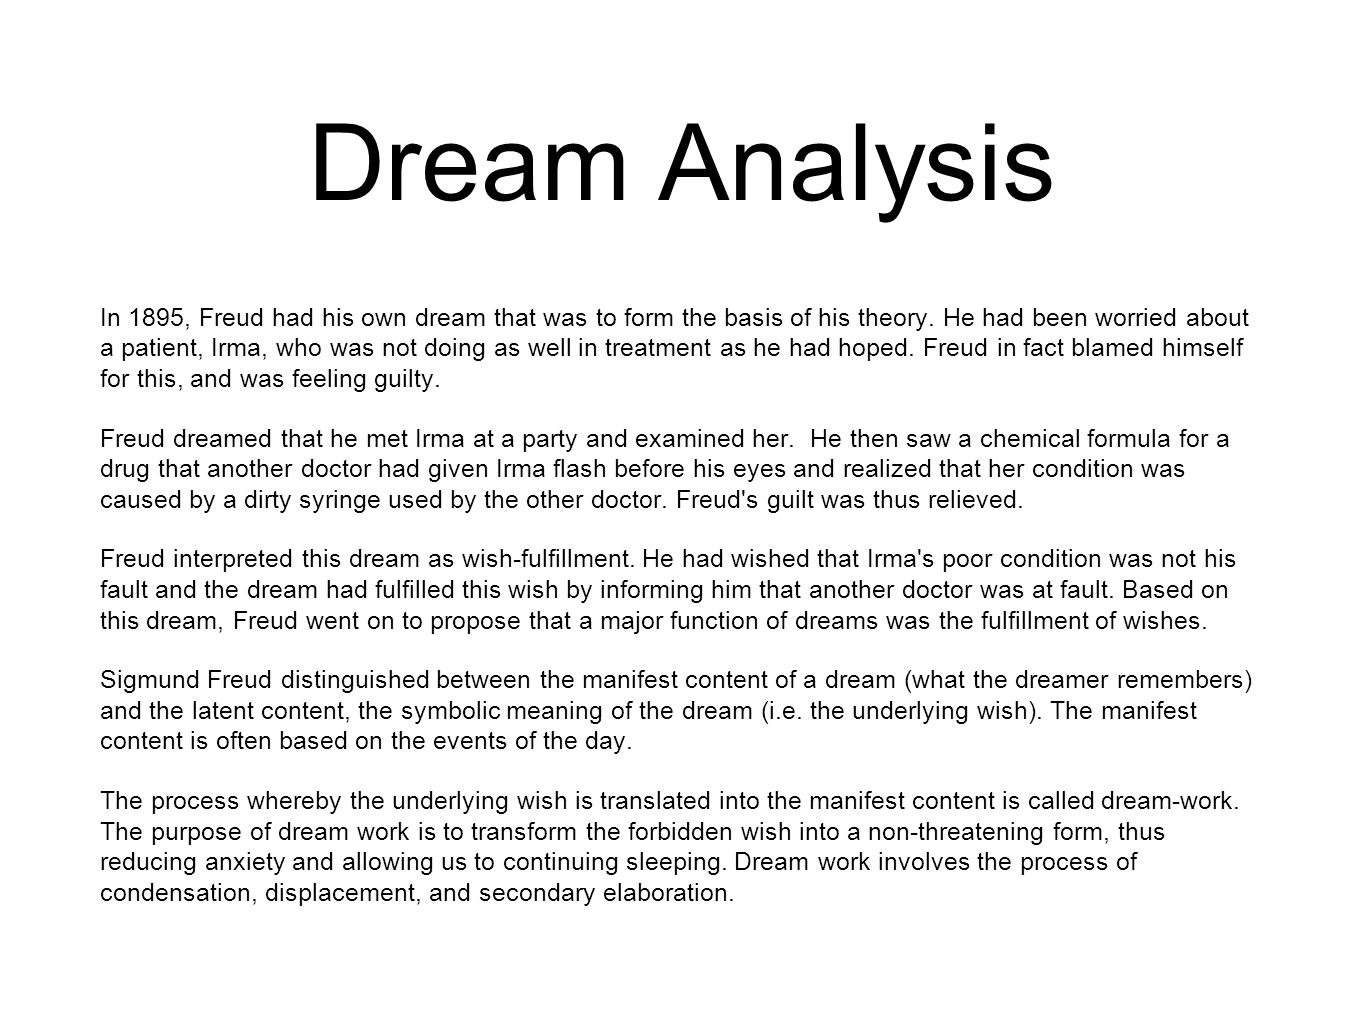 an analysis of sigmund freuds interpretation of dreams The interpretation of dreams sigmund freud absurd according allusion already analysis anxiety appear assertion awakening become brother censor child childhood cocaine condensation connection consciousness count thun course dream activity dream content dream formation dream interpretation.